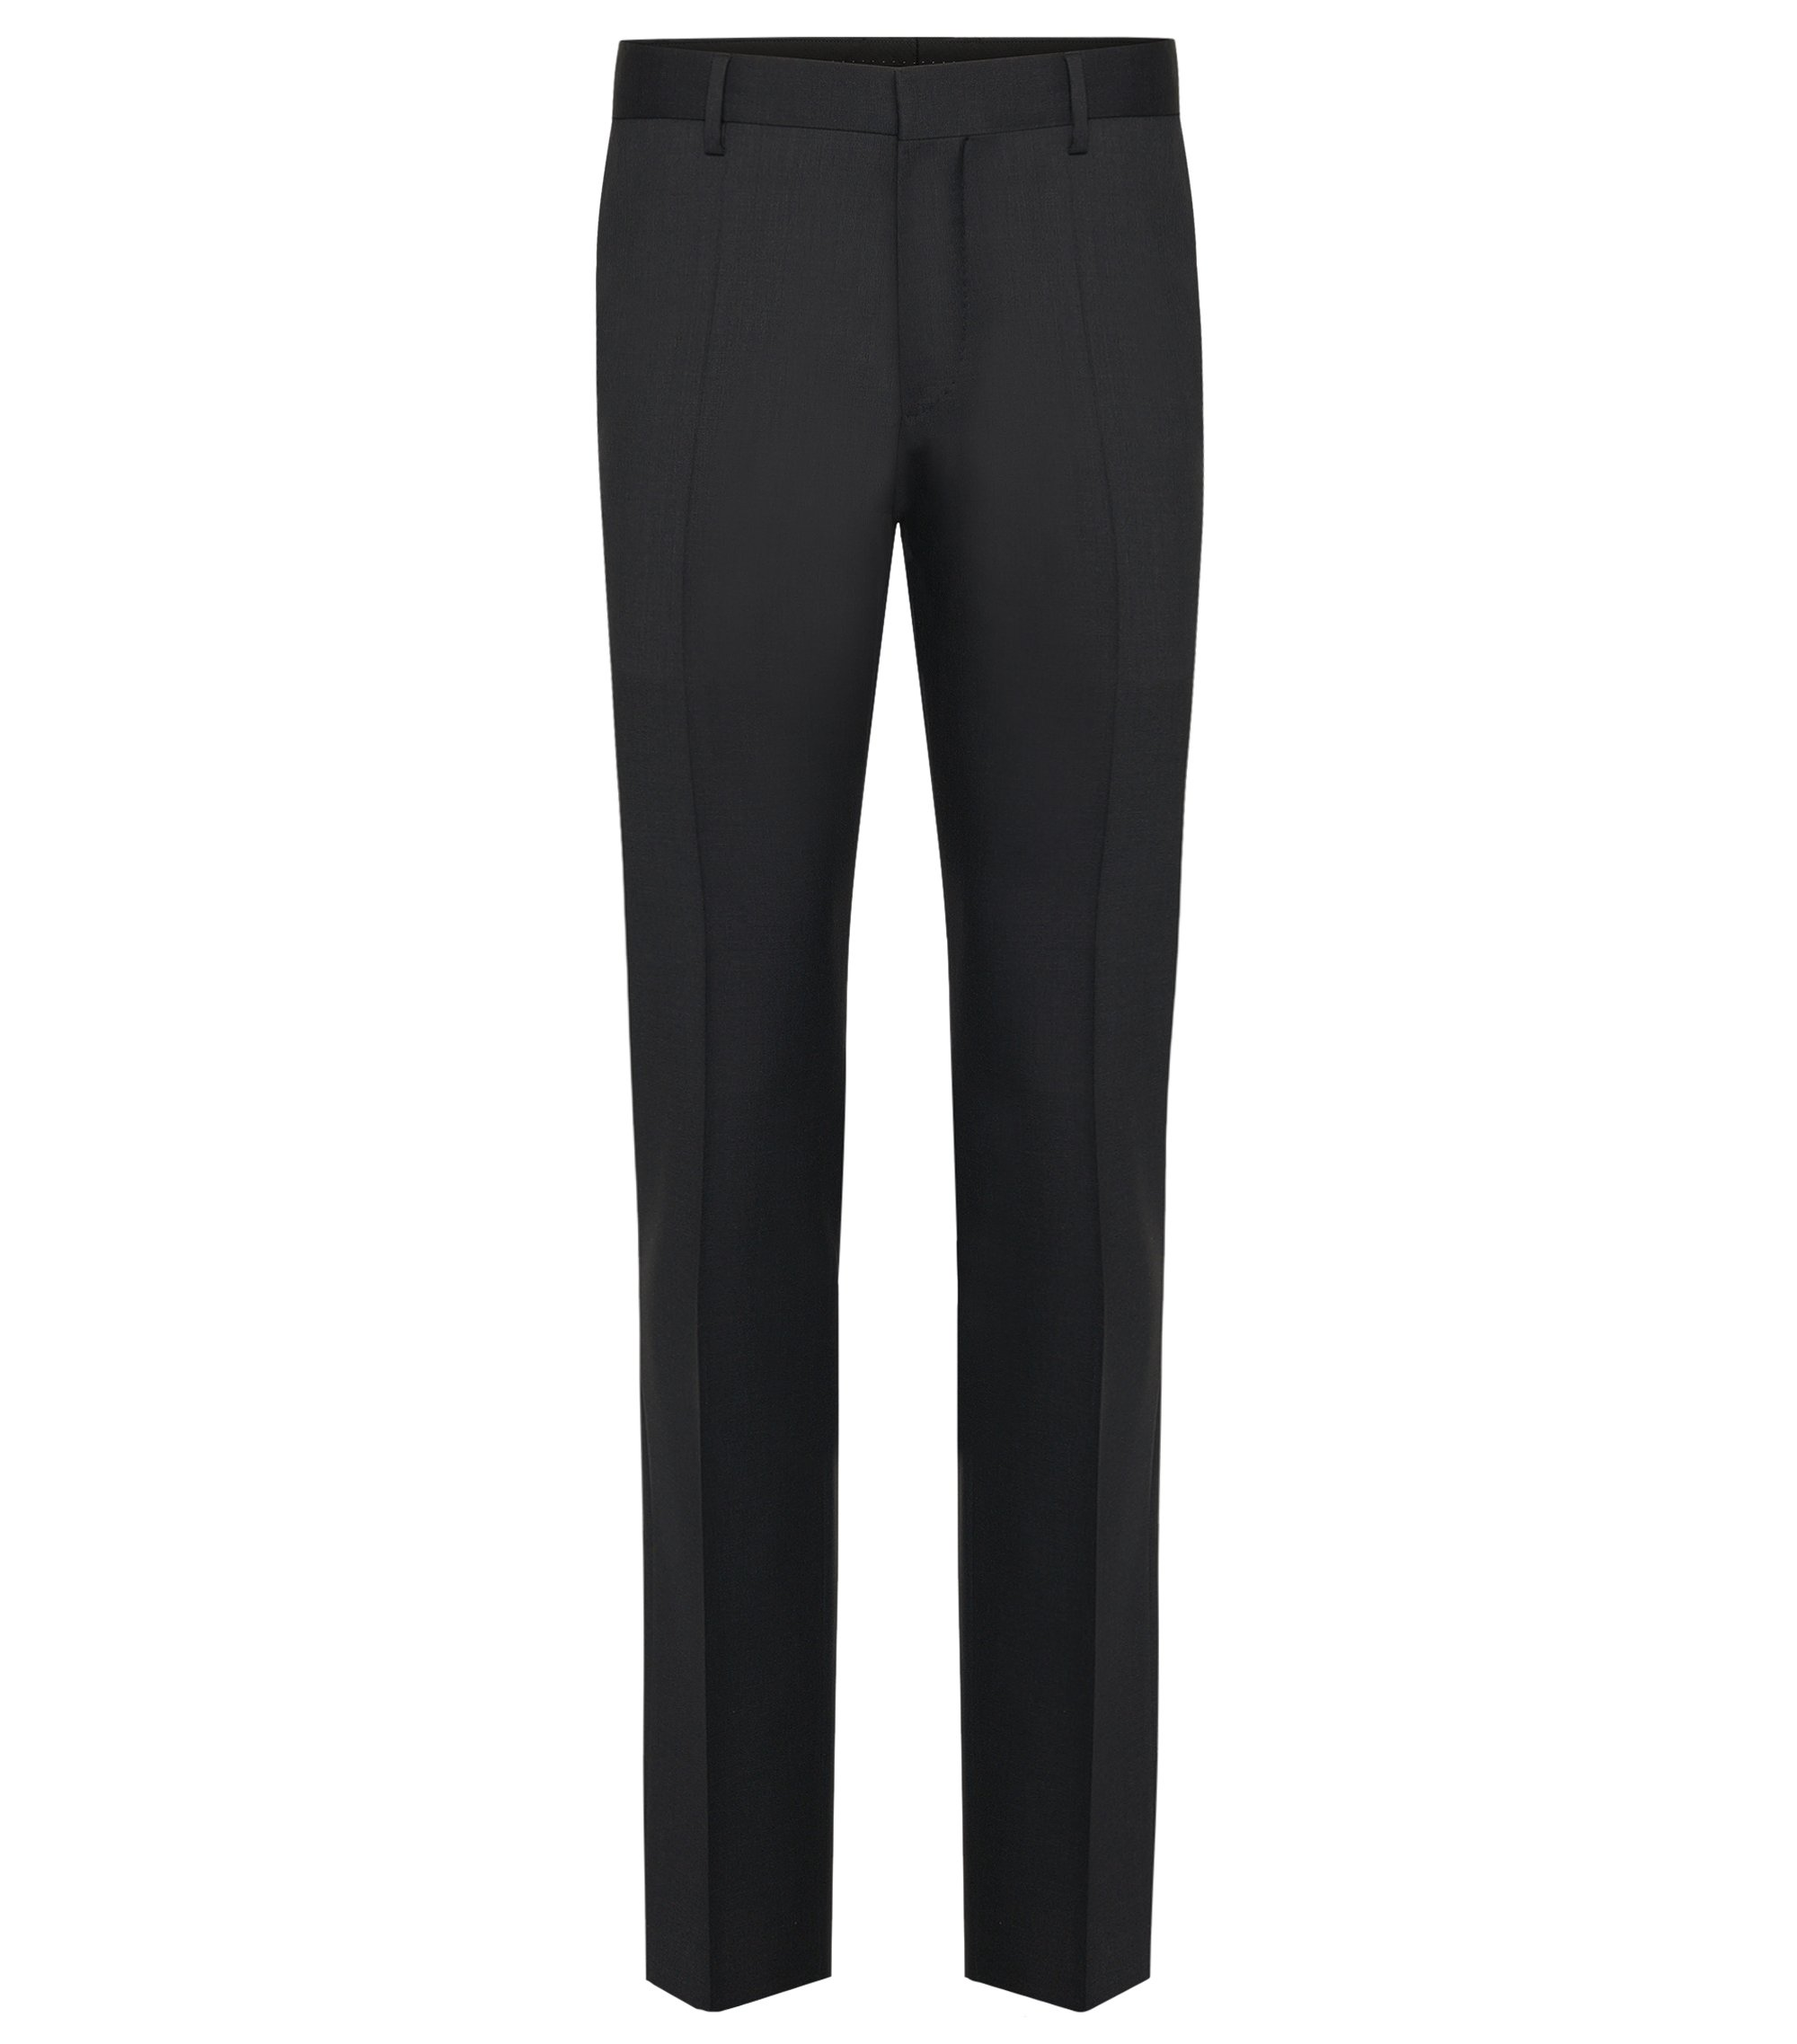 Pantalon Slim Fit Tailored uni en pure laine vierge : « T-Glover1 », Anthracite